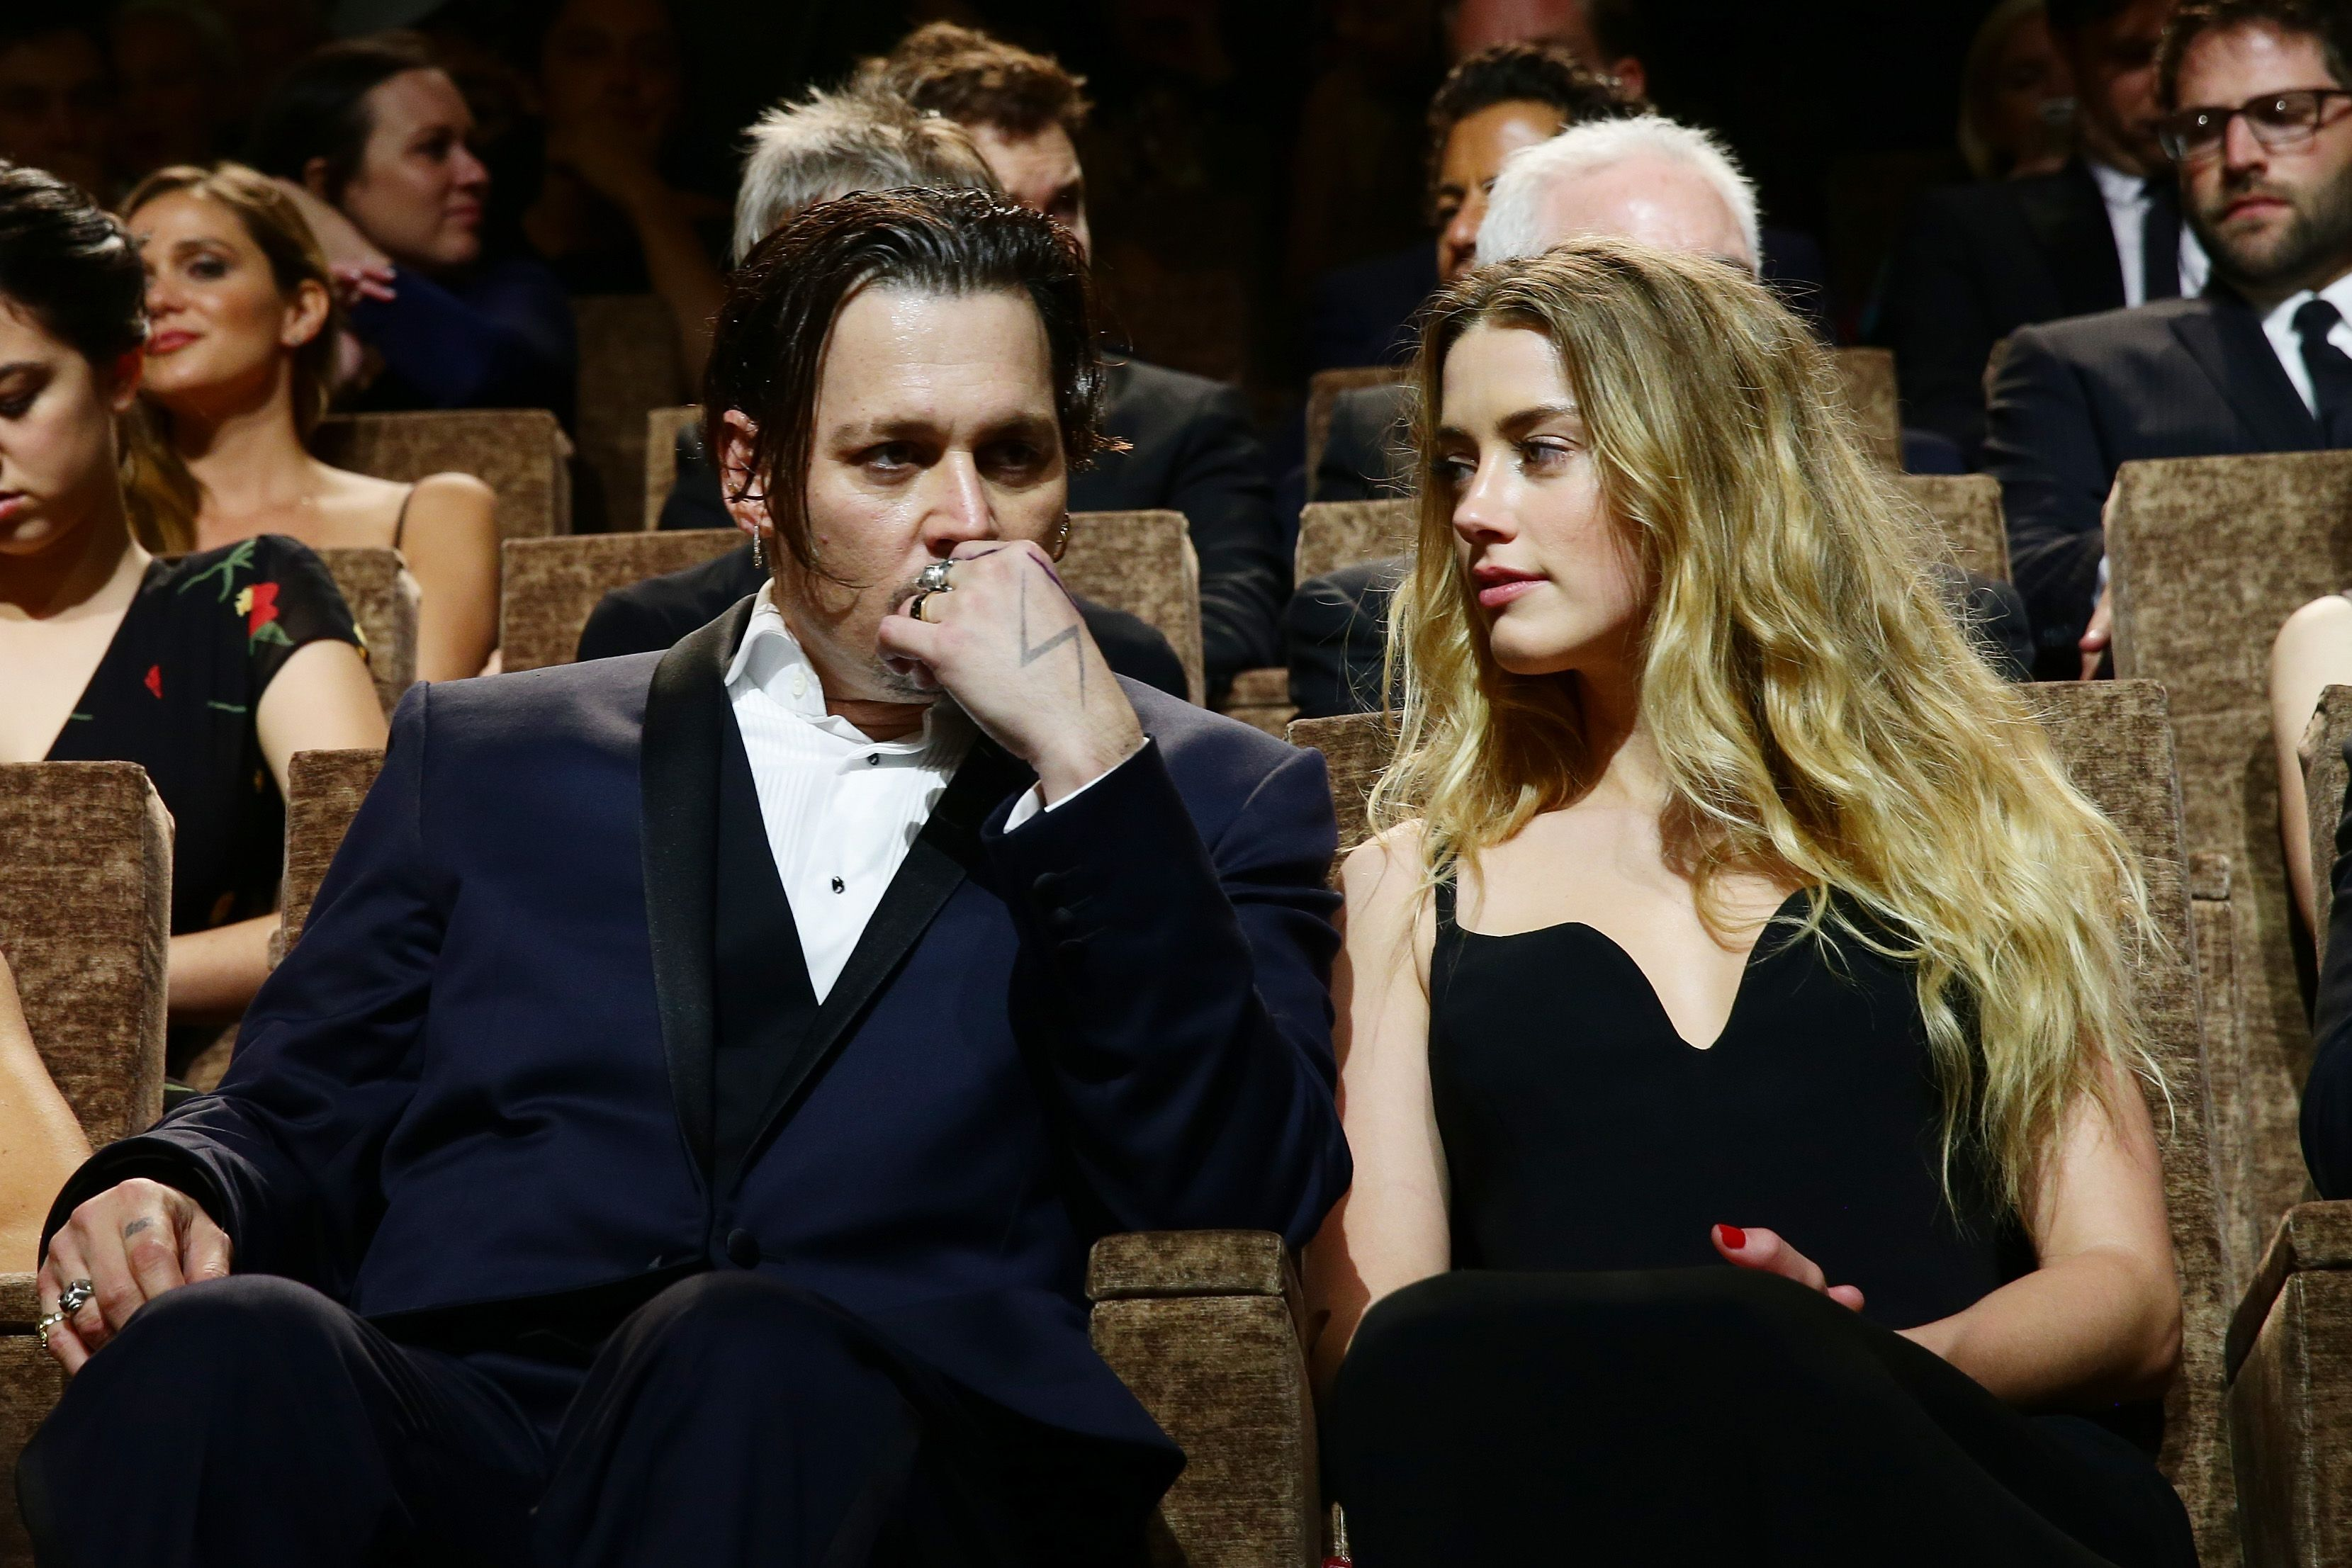 """Johnny Depp and Amber Heard ata premiere for """"Black Mass""""during the 72nd Venice Film Festival on September 4, 2015, in Italy 